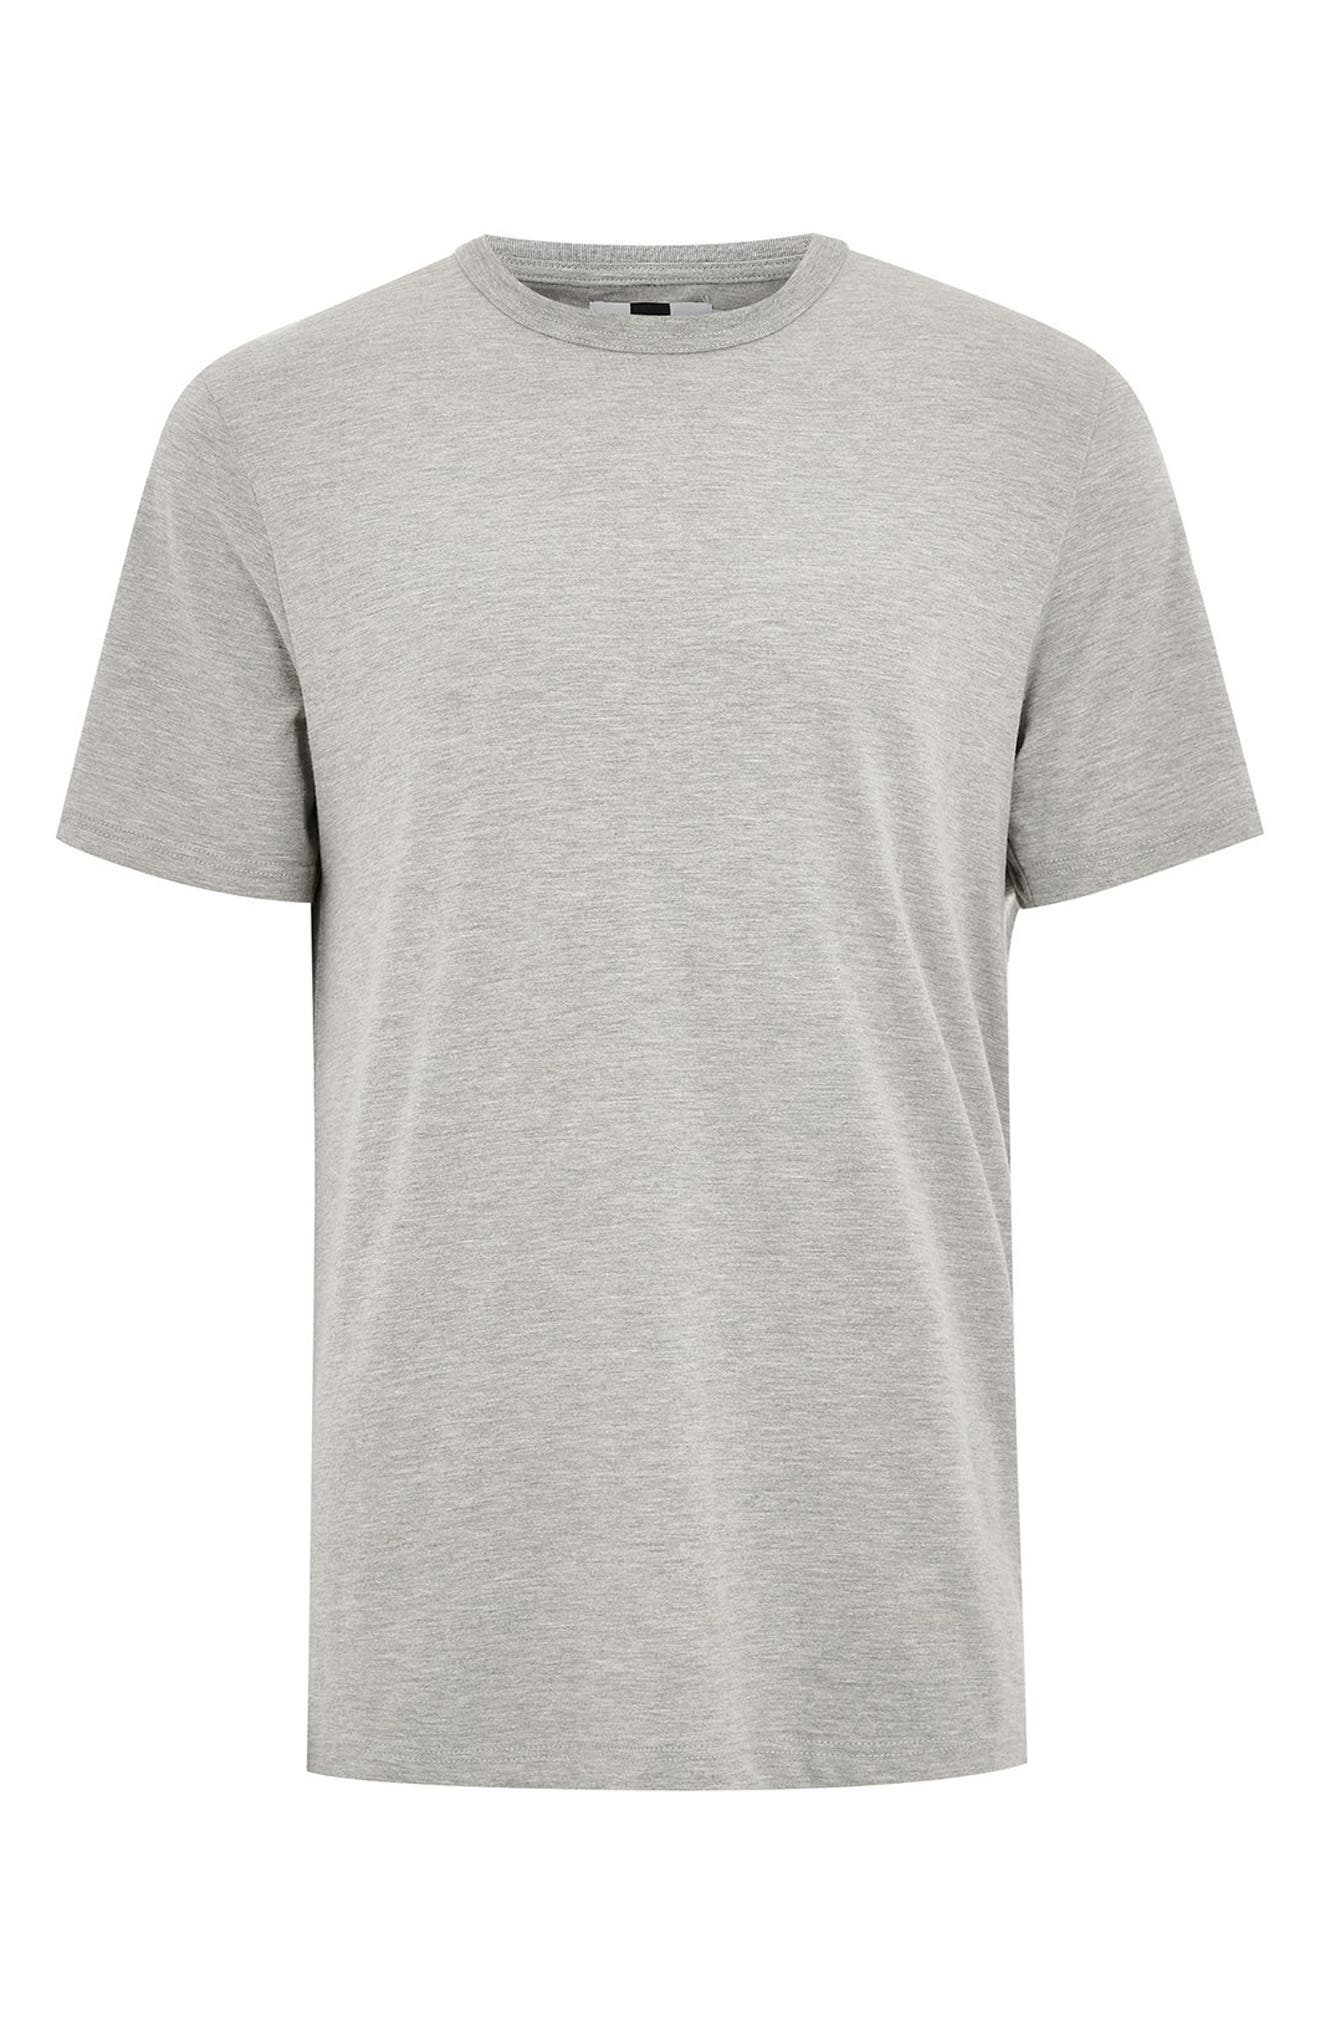 Classic Fit T-Shirt,                             Alternate thumbnail 3, color,                             LIGHT GREY